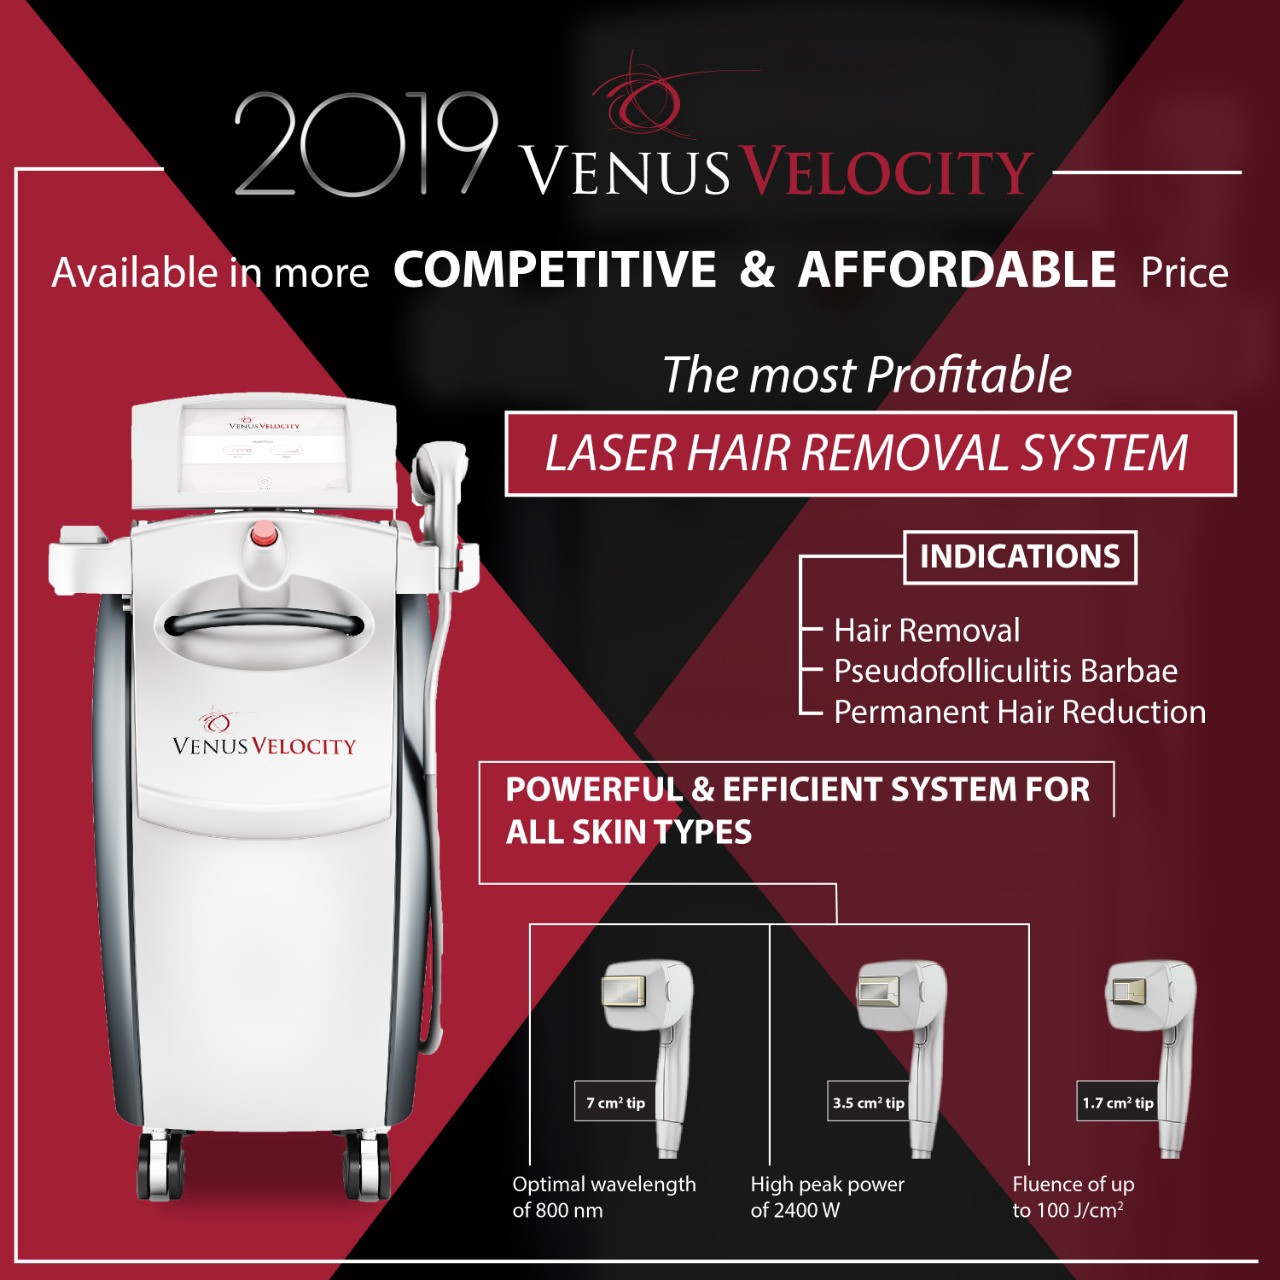 Introducing The Most Profitable Hair Removal Solution Venus Velocity By Venus Concept India Medium